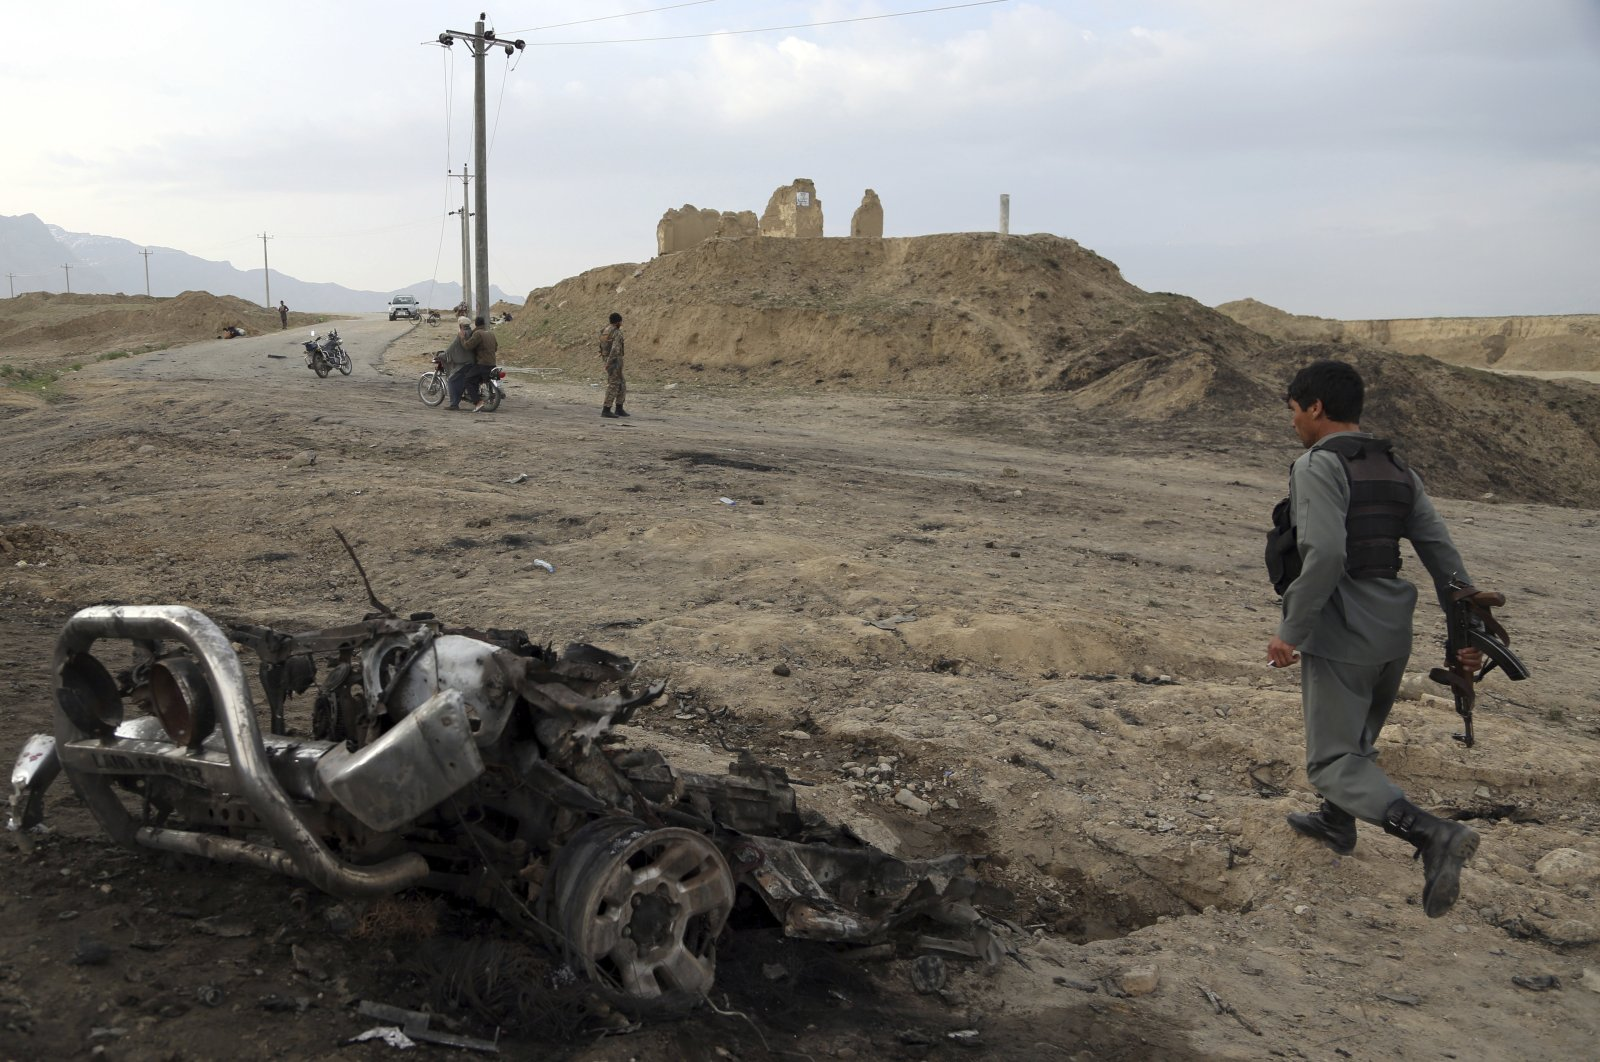 Afghan security forces gather at the site of Monday's attack near the Bagram air base, north of Kabul, Afghanistan, April 9, 2019. (AP Photo)